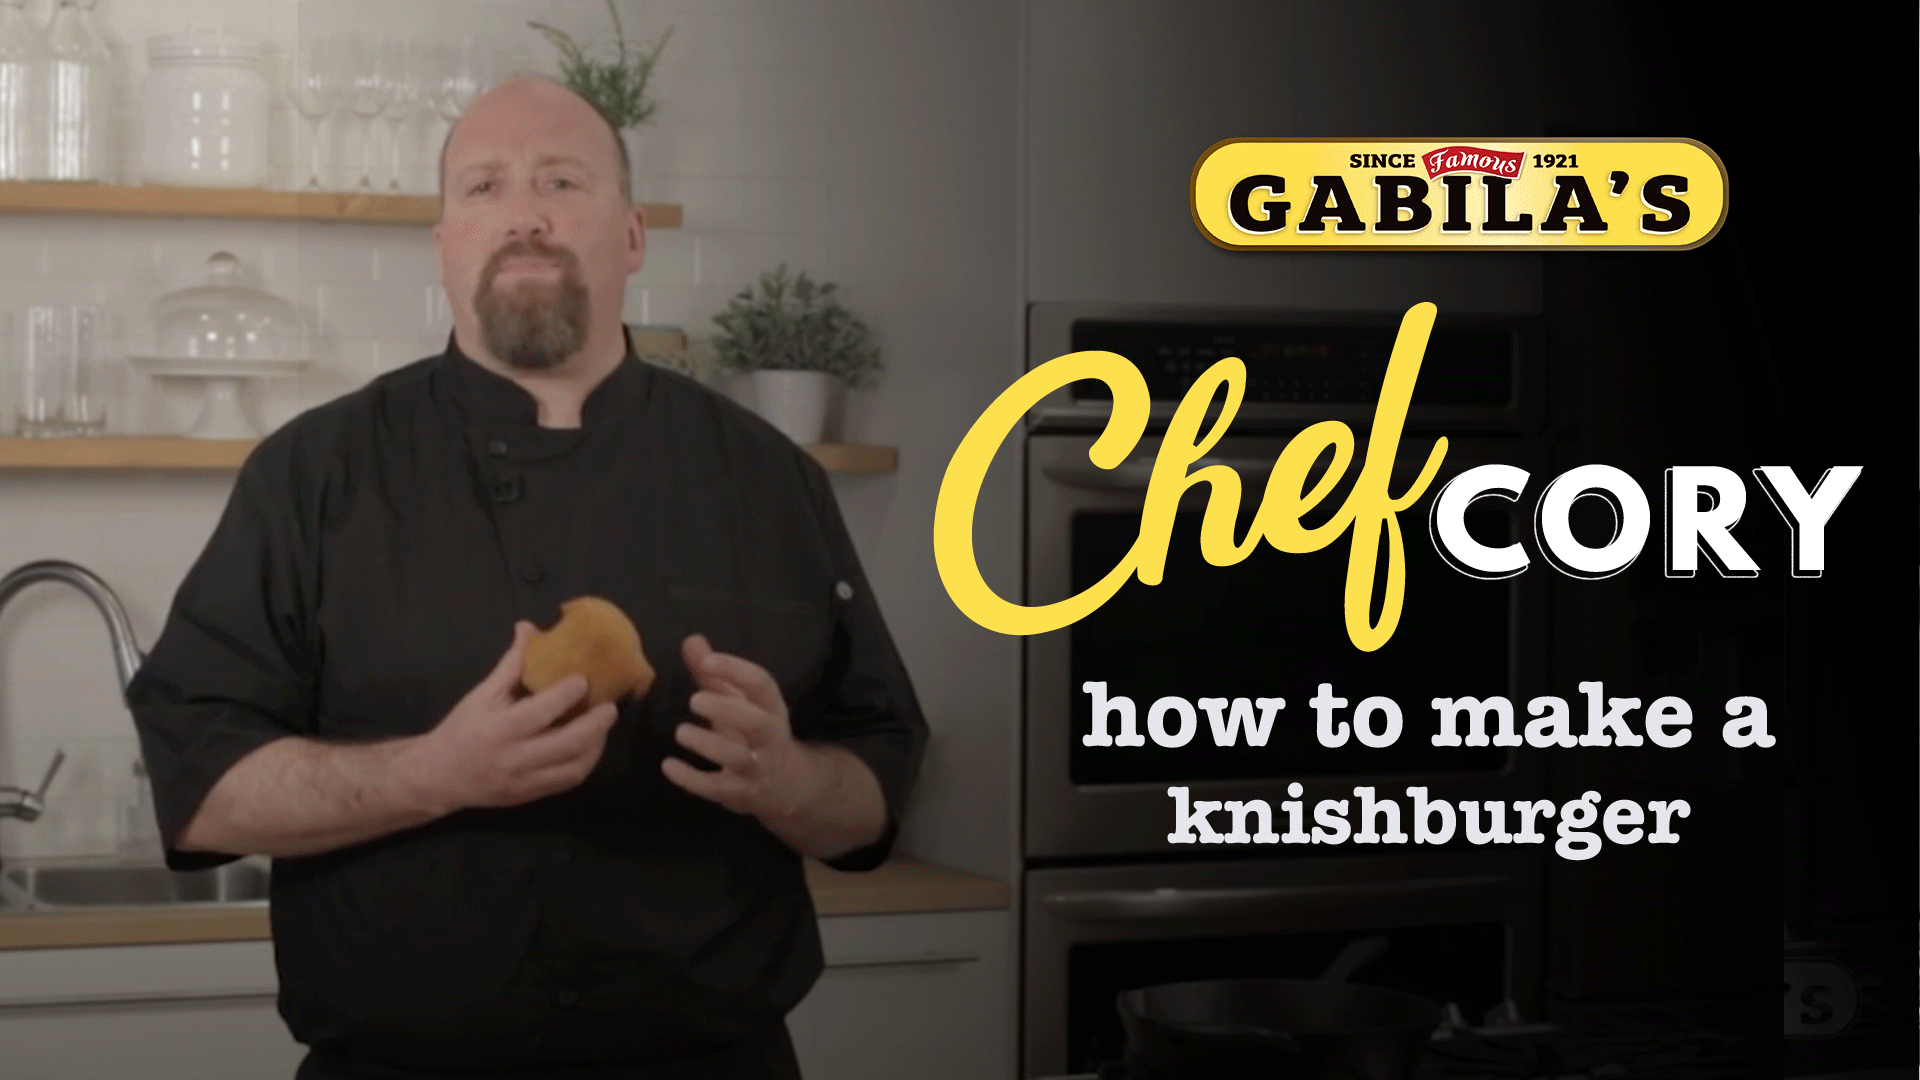 chef-corry-thumbail